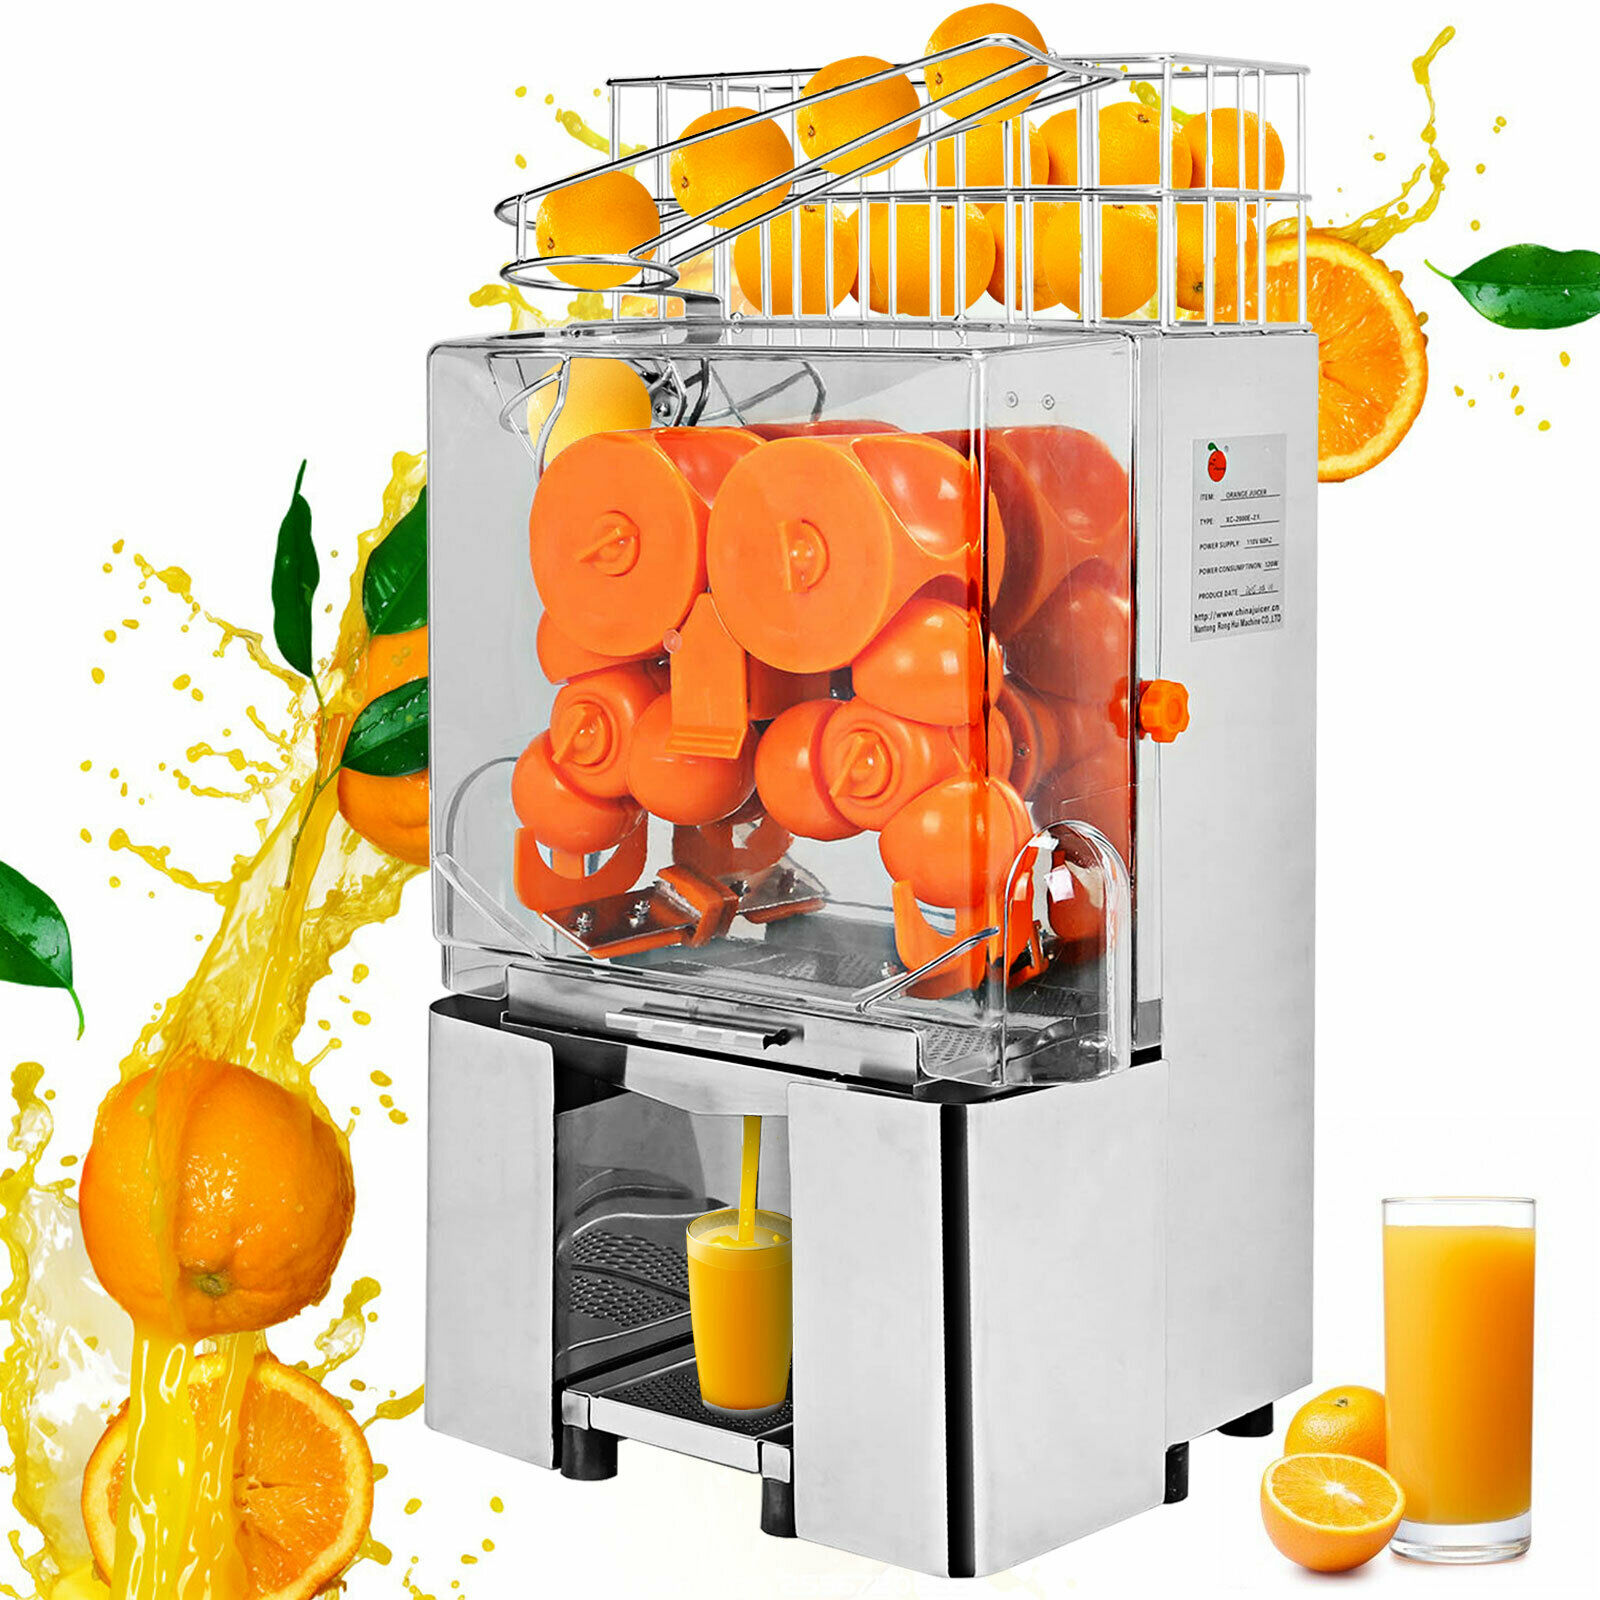 Machine à Jus d'orange ZUNATUR | eBay